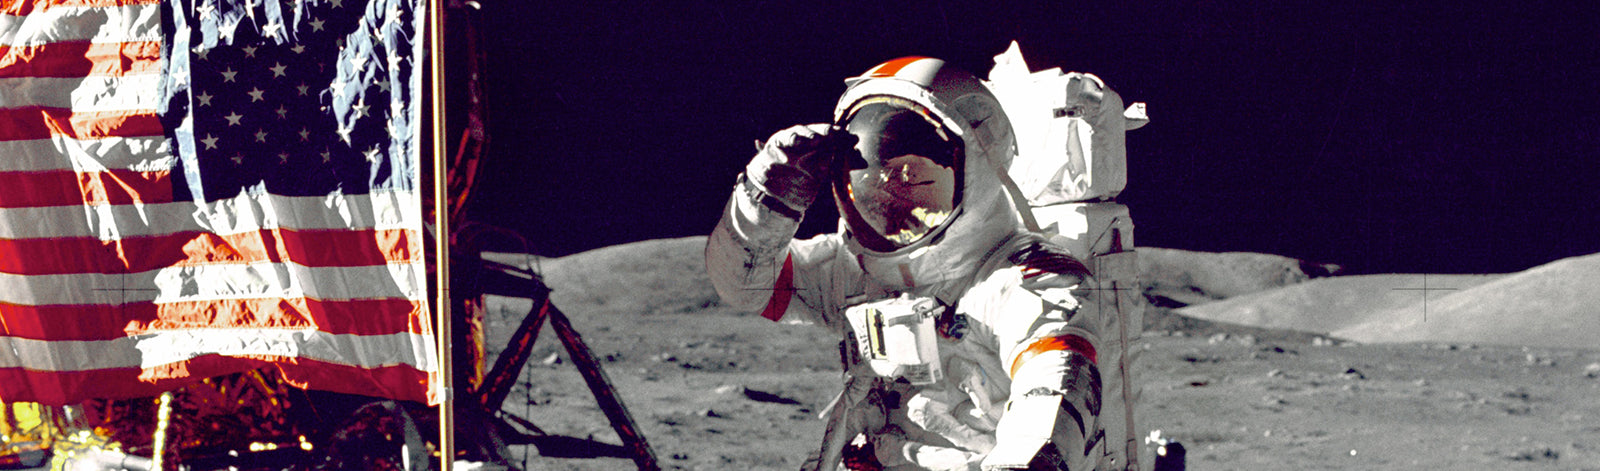 Best Freeze-Dried Foods to Take Into Space